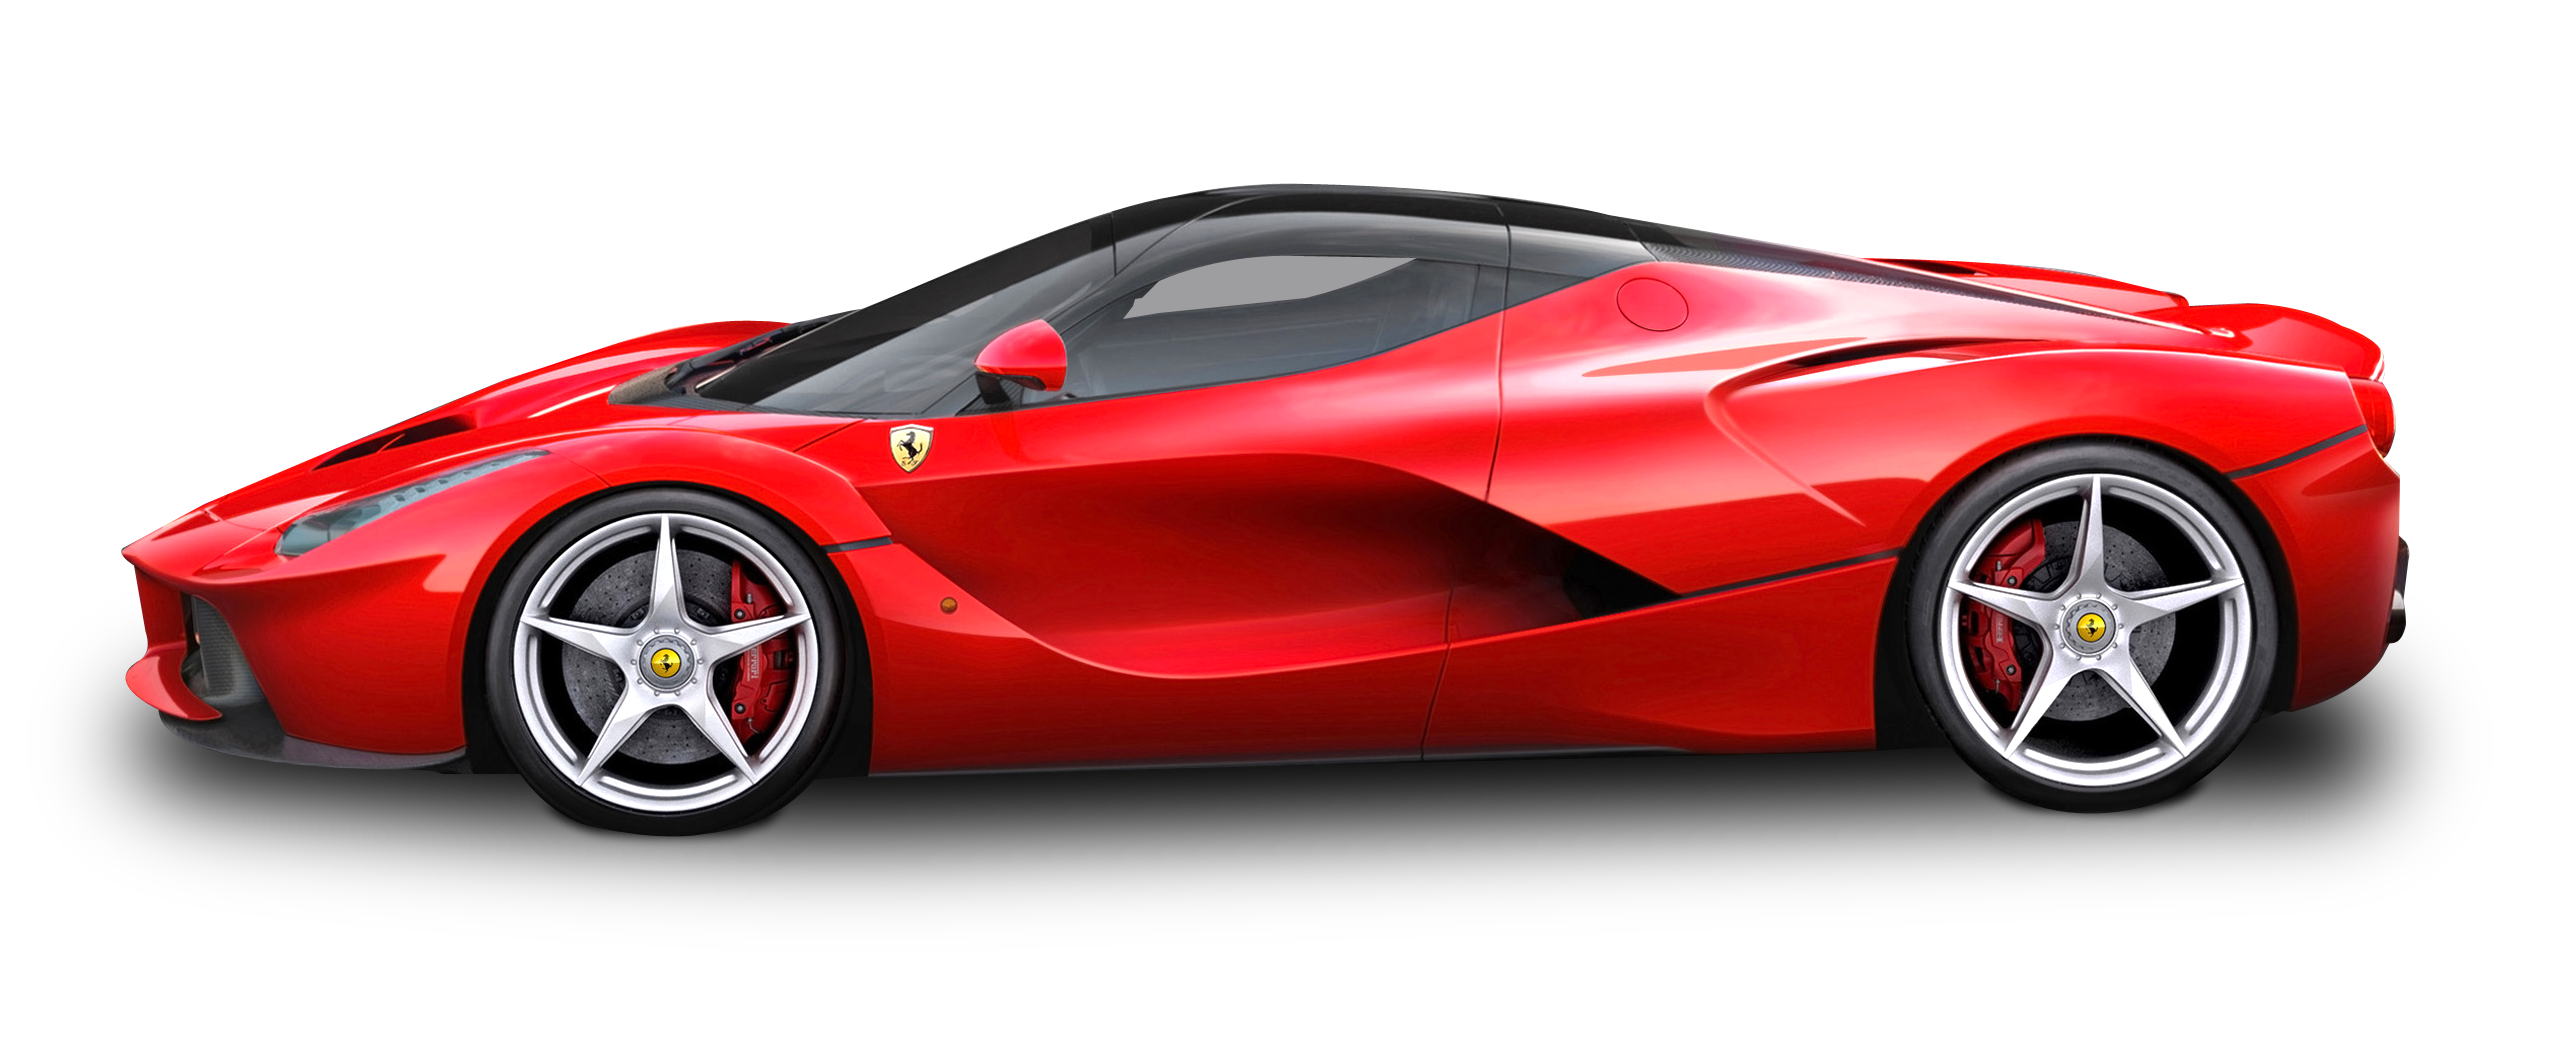 Red Sports Car, Ferrari Png image #39069